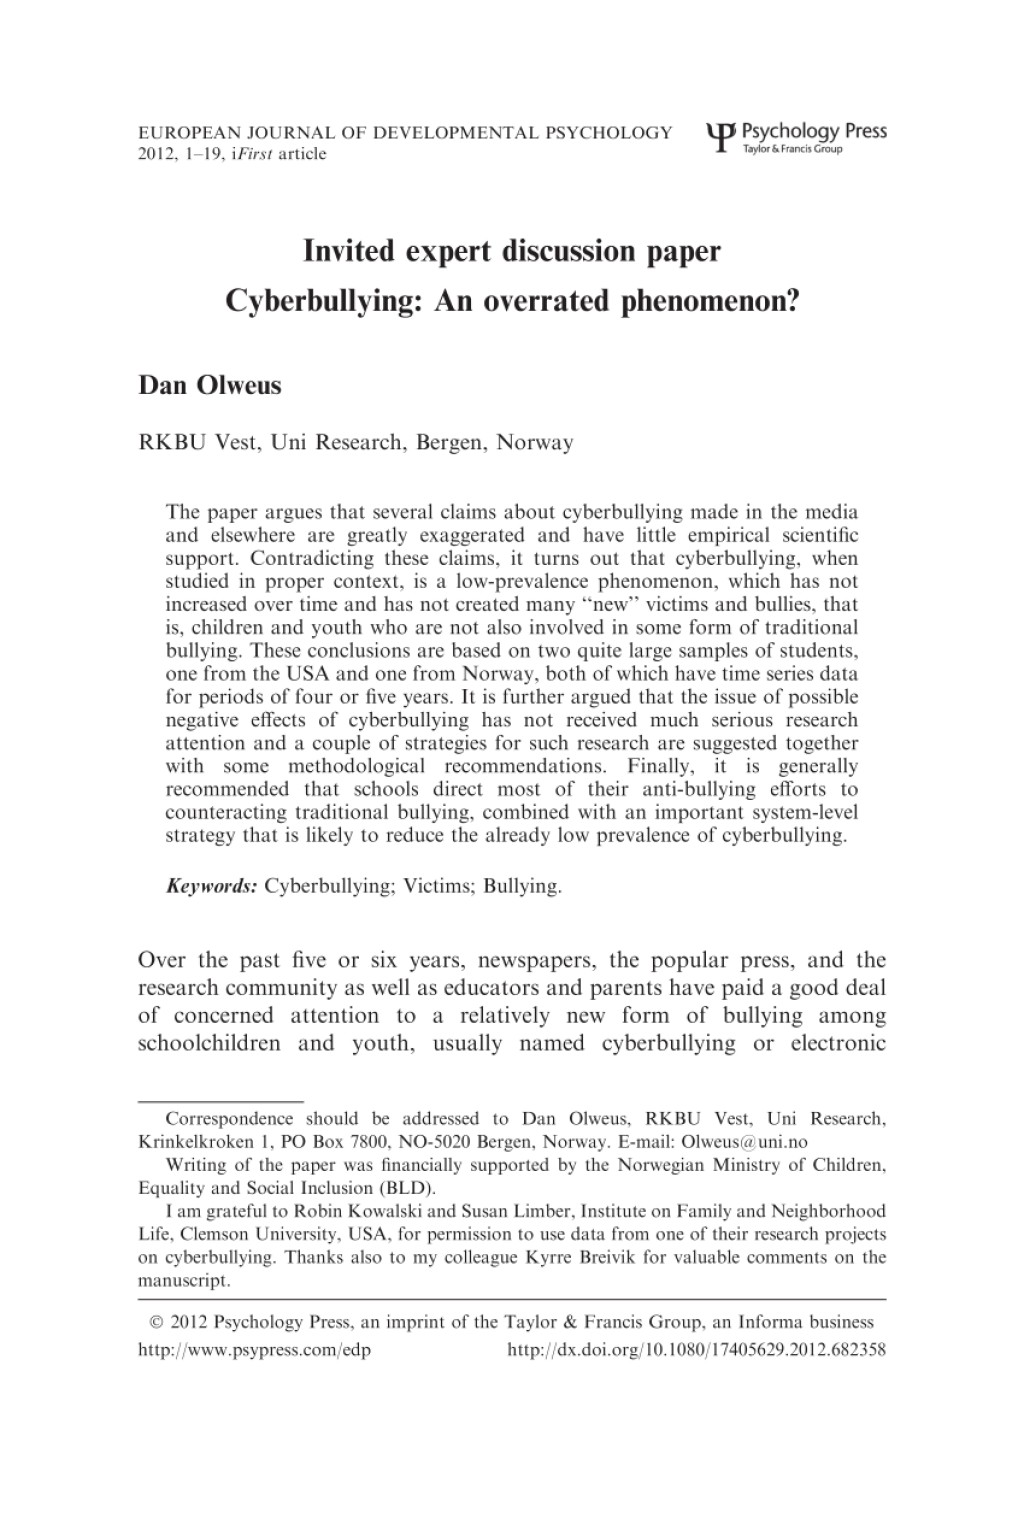 009 Largepreview Cyberbullying Research Paper Awesome Questions Large